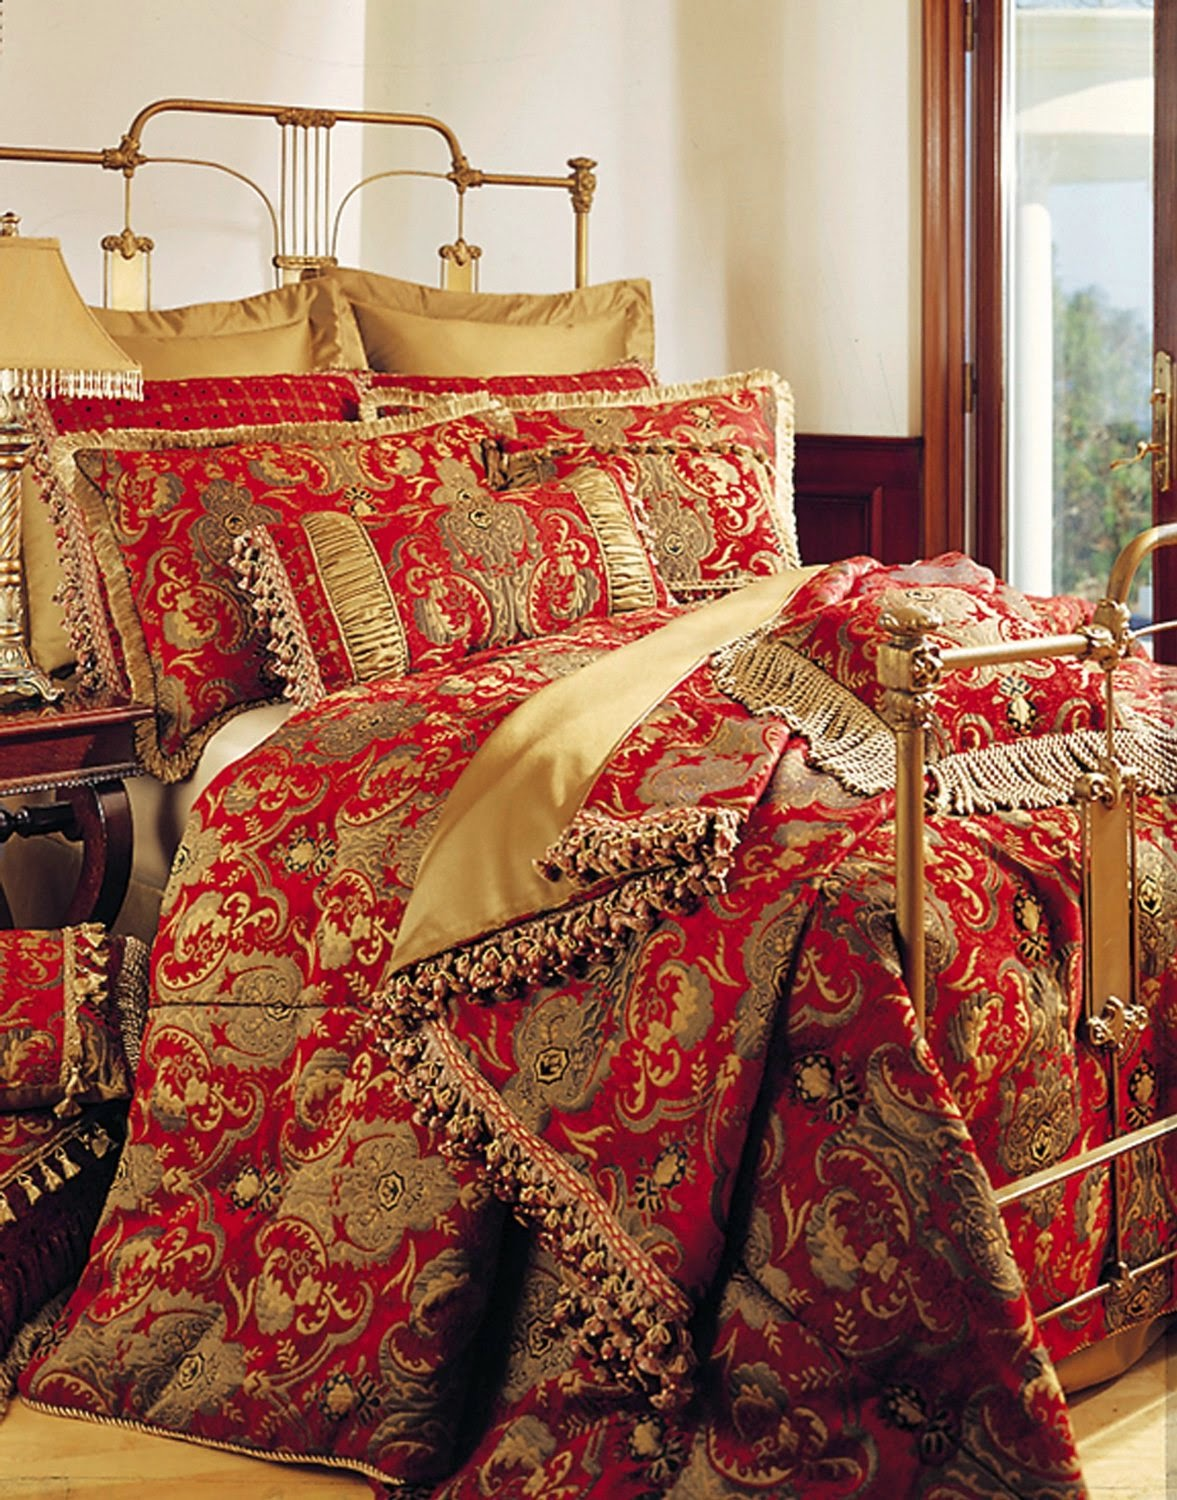 Bedroom Decor Ideas And Designs Top Ten Oriental Bedding Sets - Chinese dragon comforter set